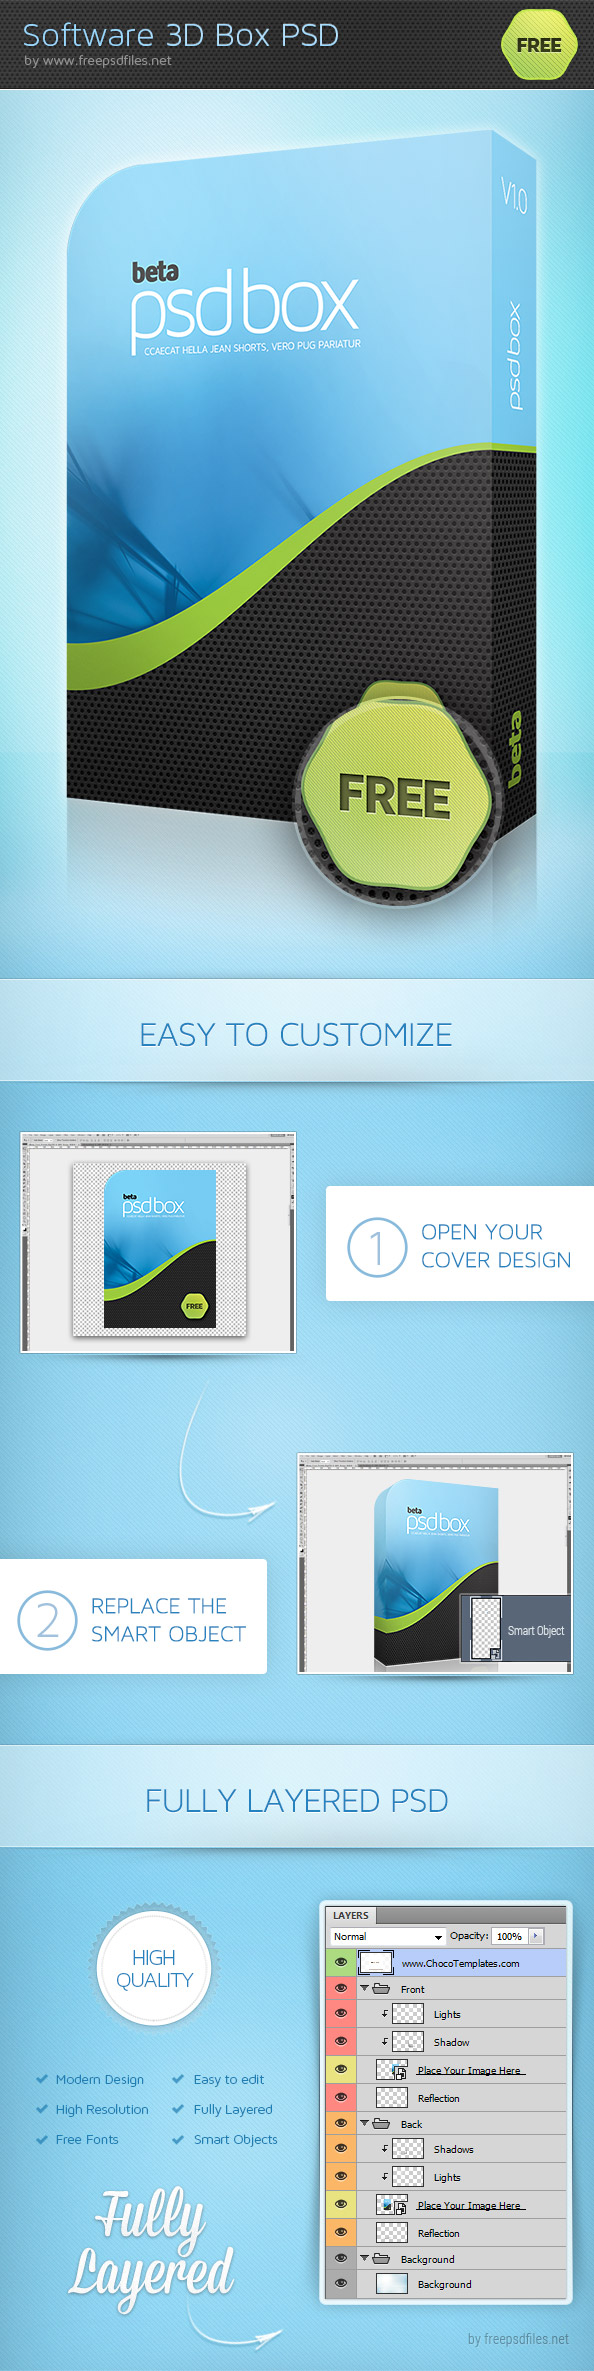 Software 3d box psd template free psd files for Software 3d free